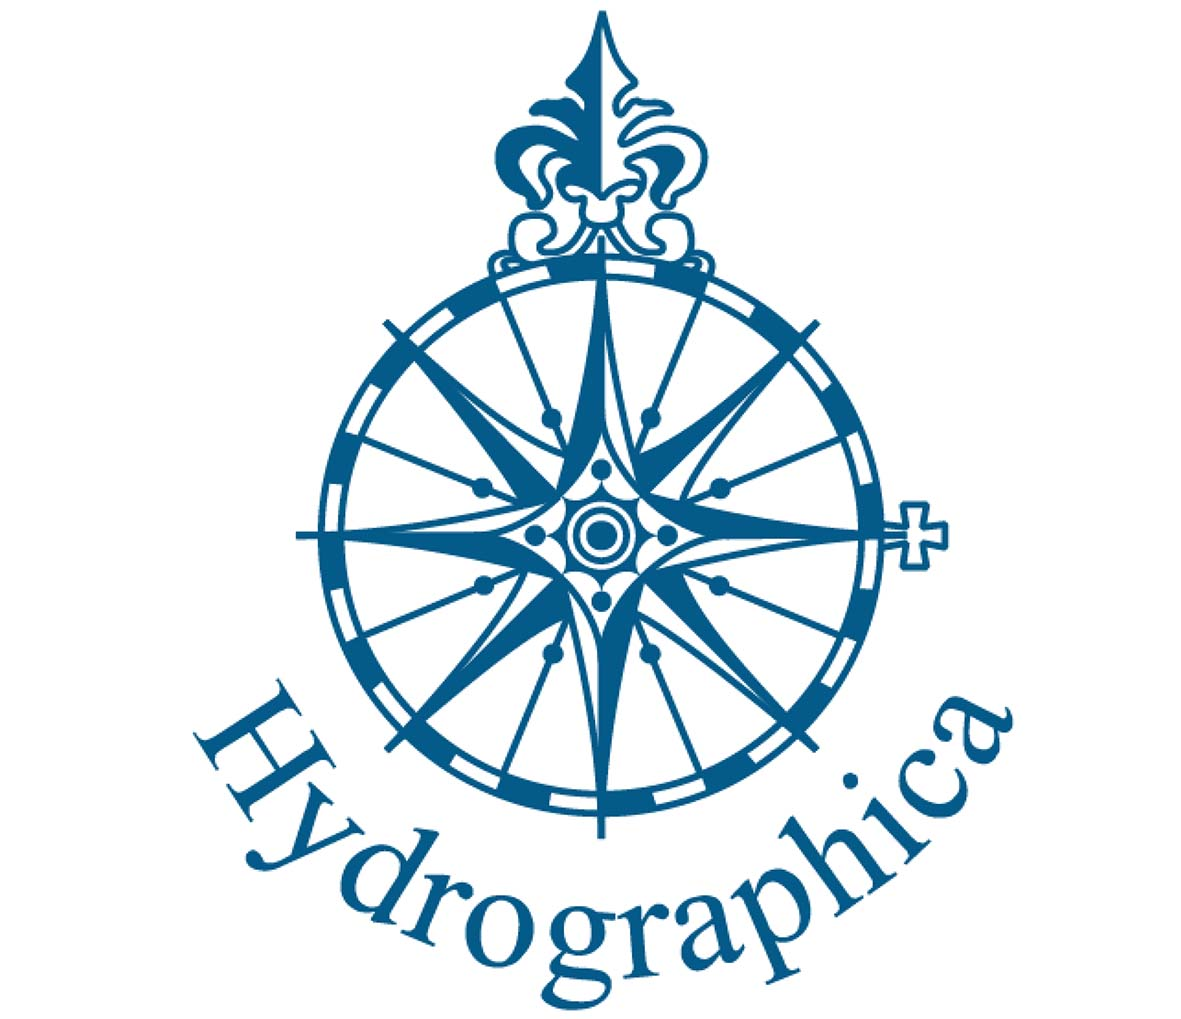 https://hydrographica.se/